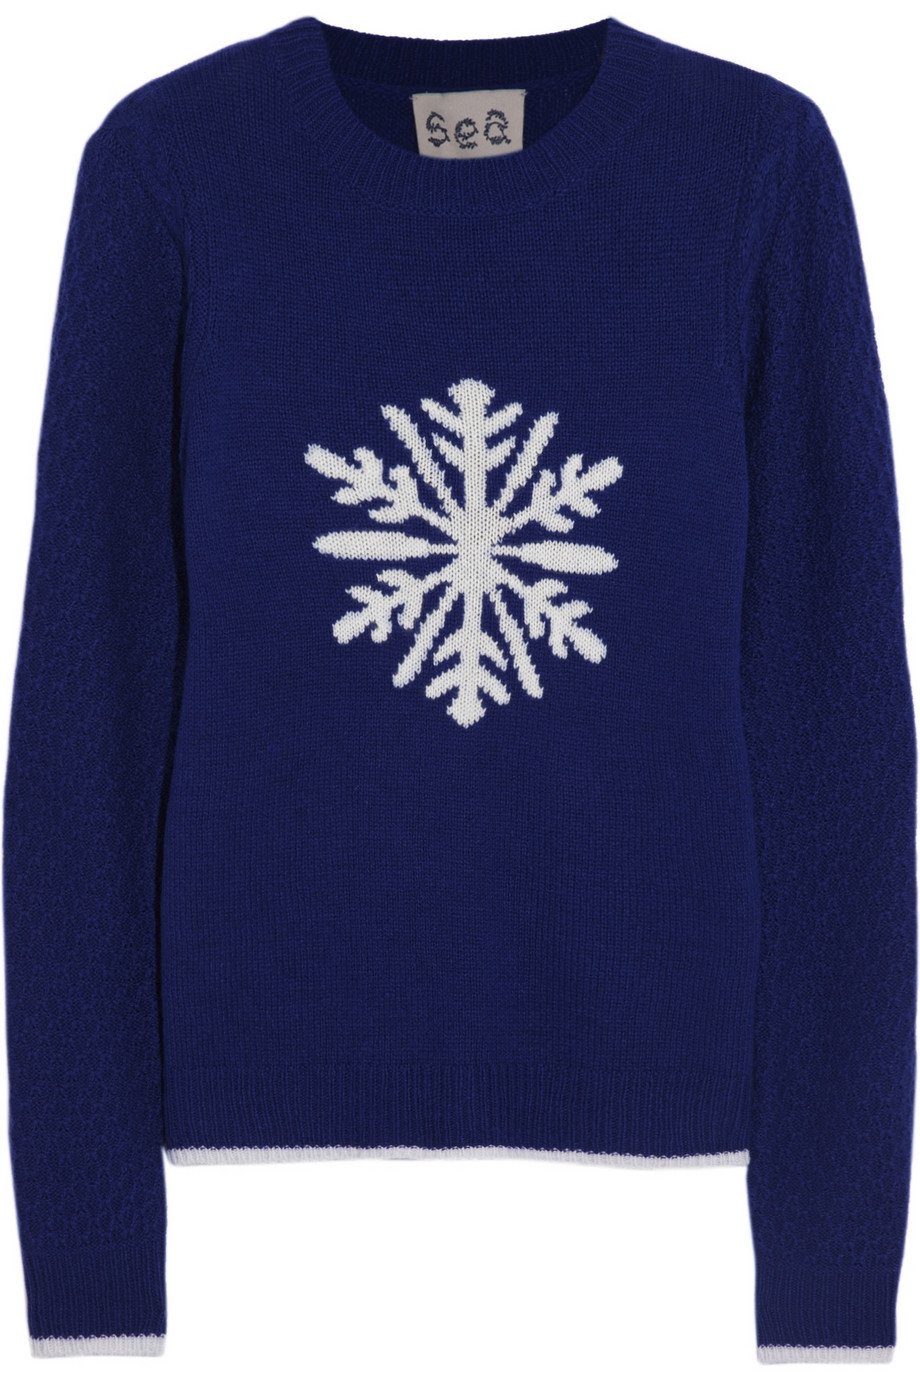 Sea Snowflake Intarsia Knitted Sweater in Blue | Lyst